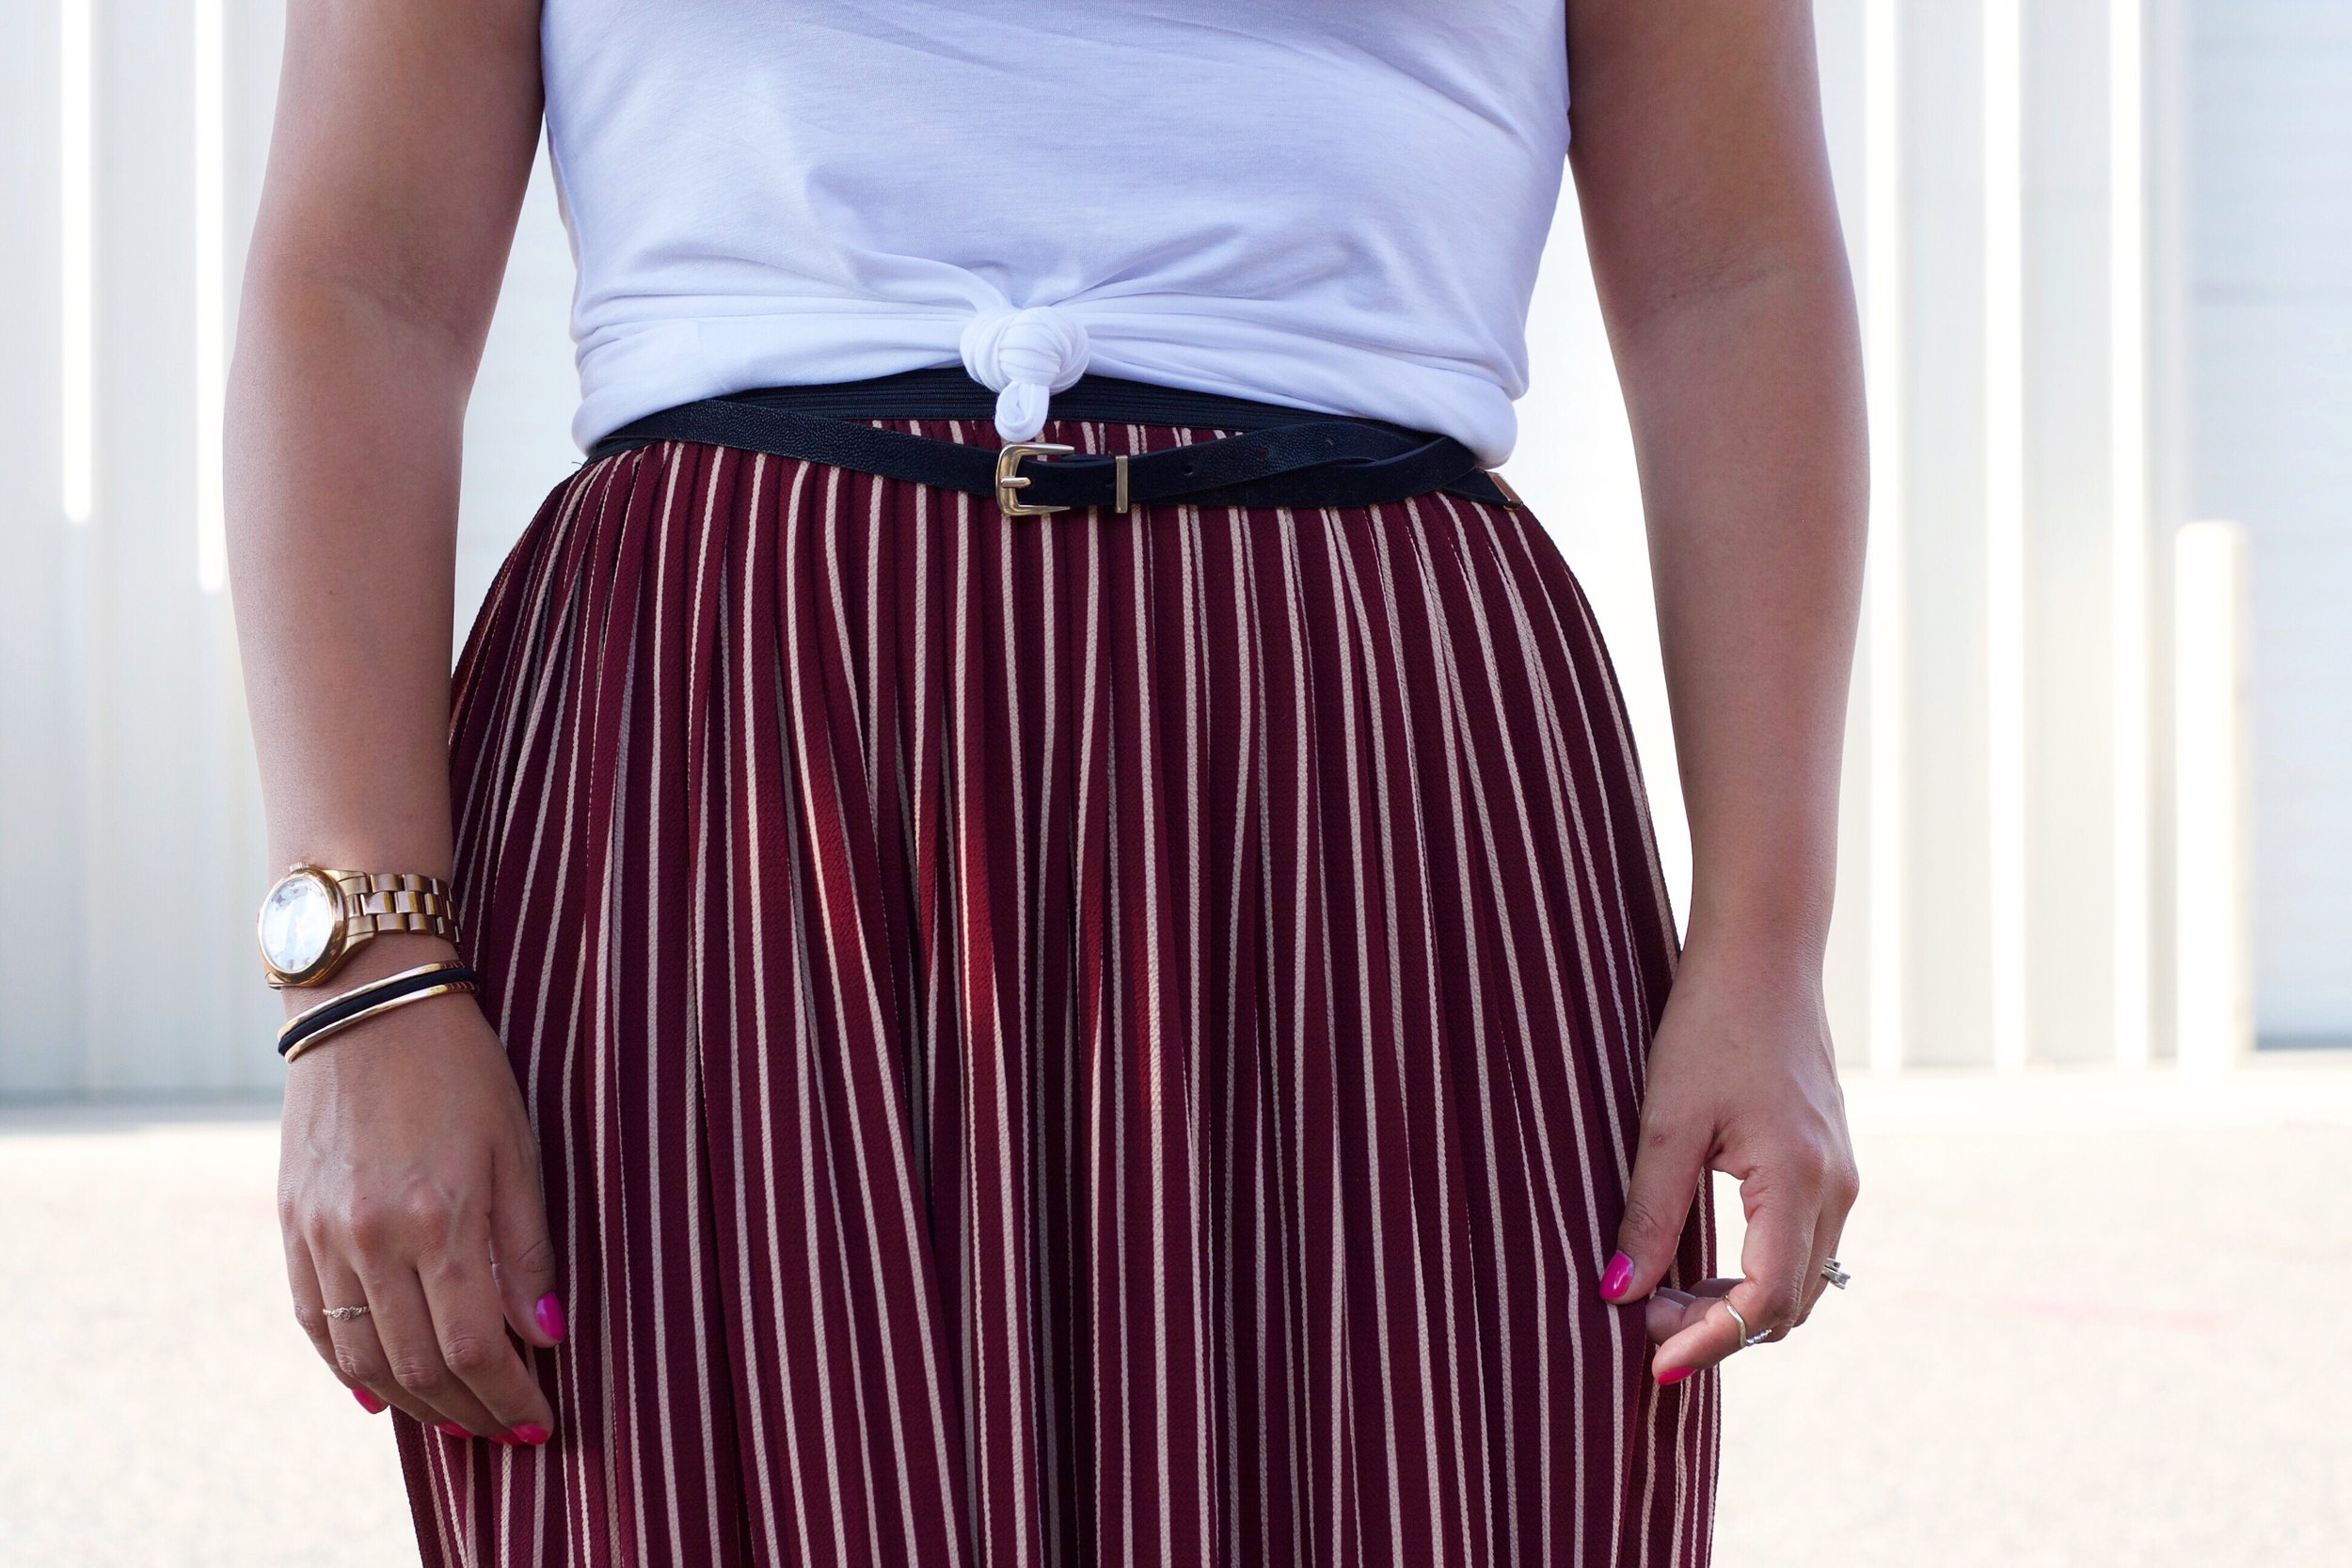 Maroon Stipe Skirt and Suede Belt. Basic White Tee and knot detail.